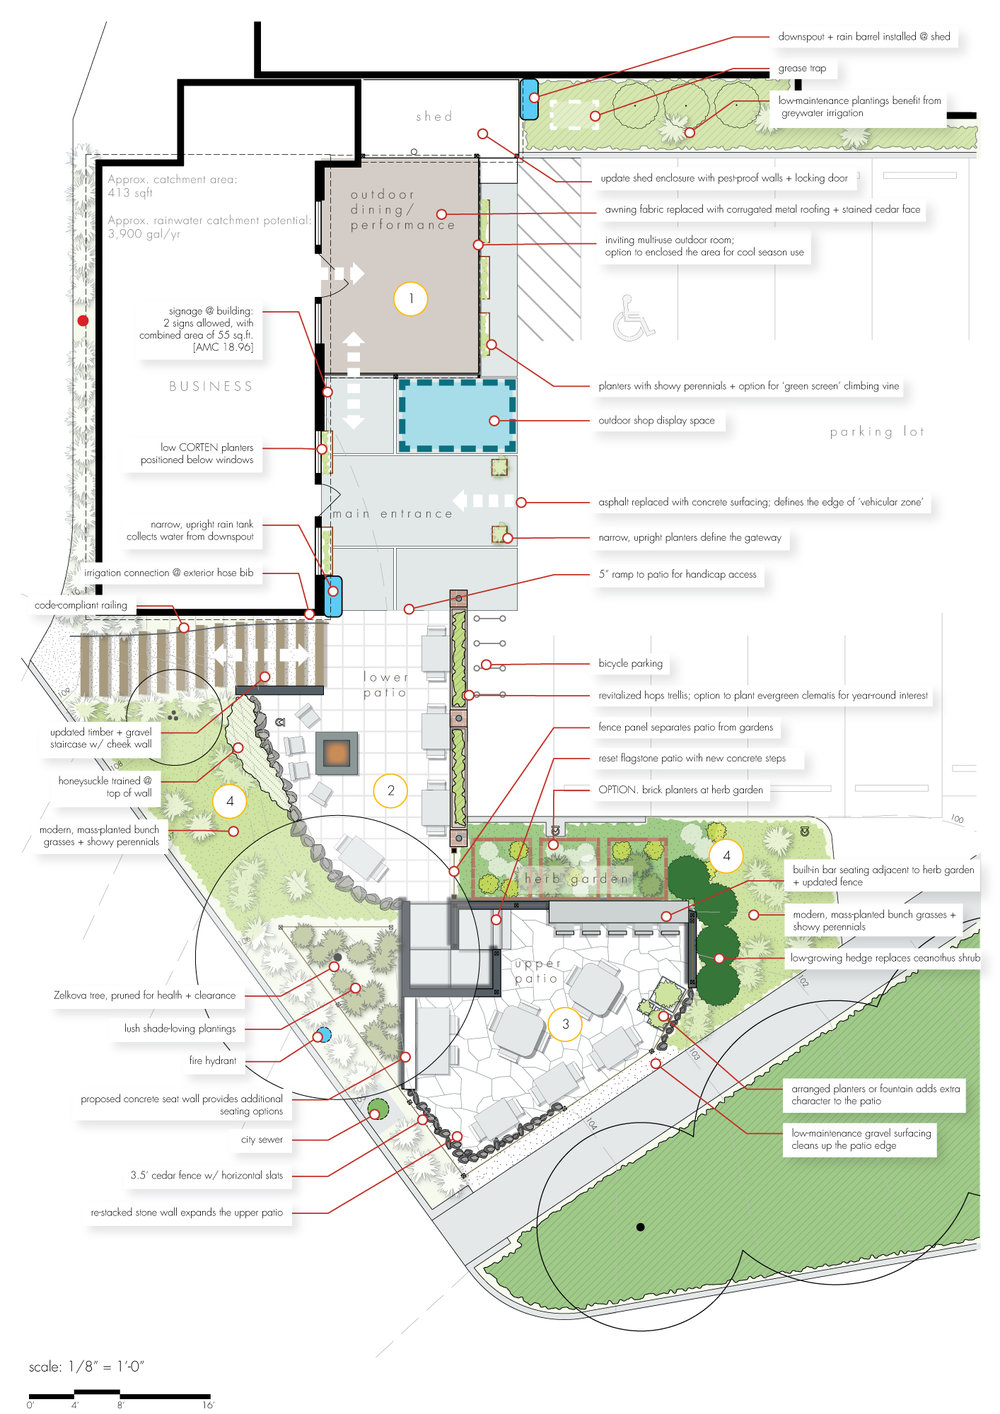 Schematic Design Example Commercial Layout + Landscape Architecture Design Southern Oregon + Business Landscaping